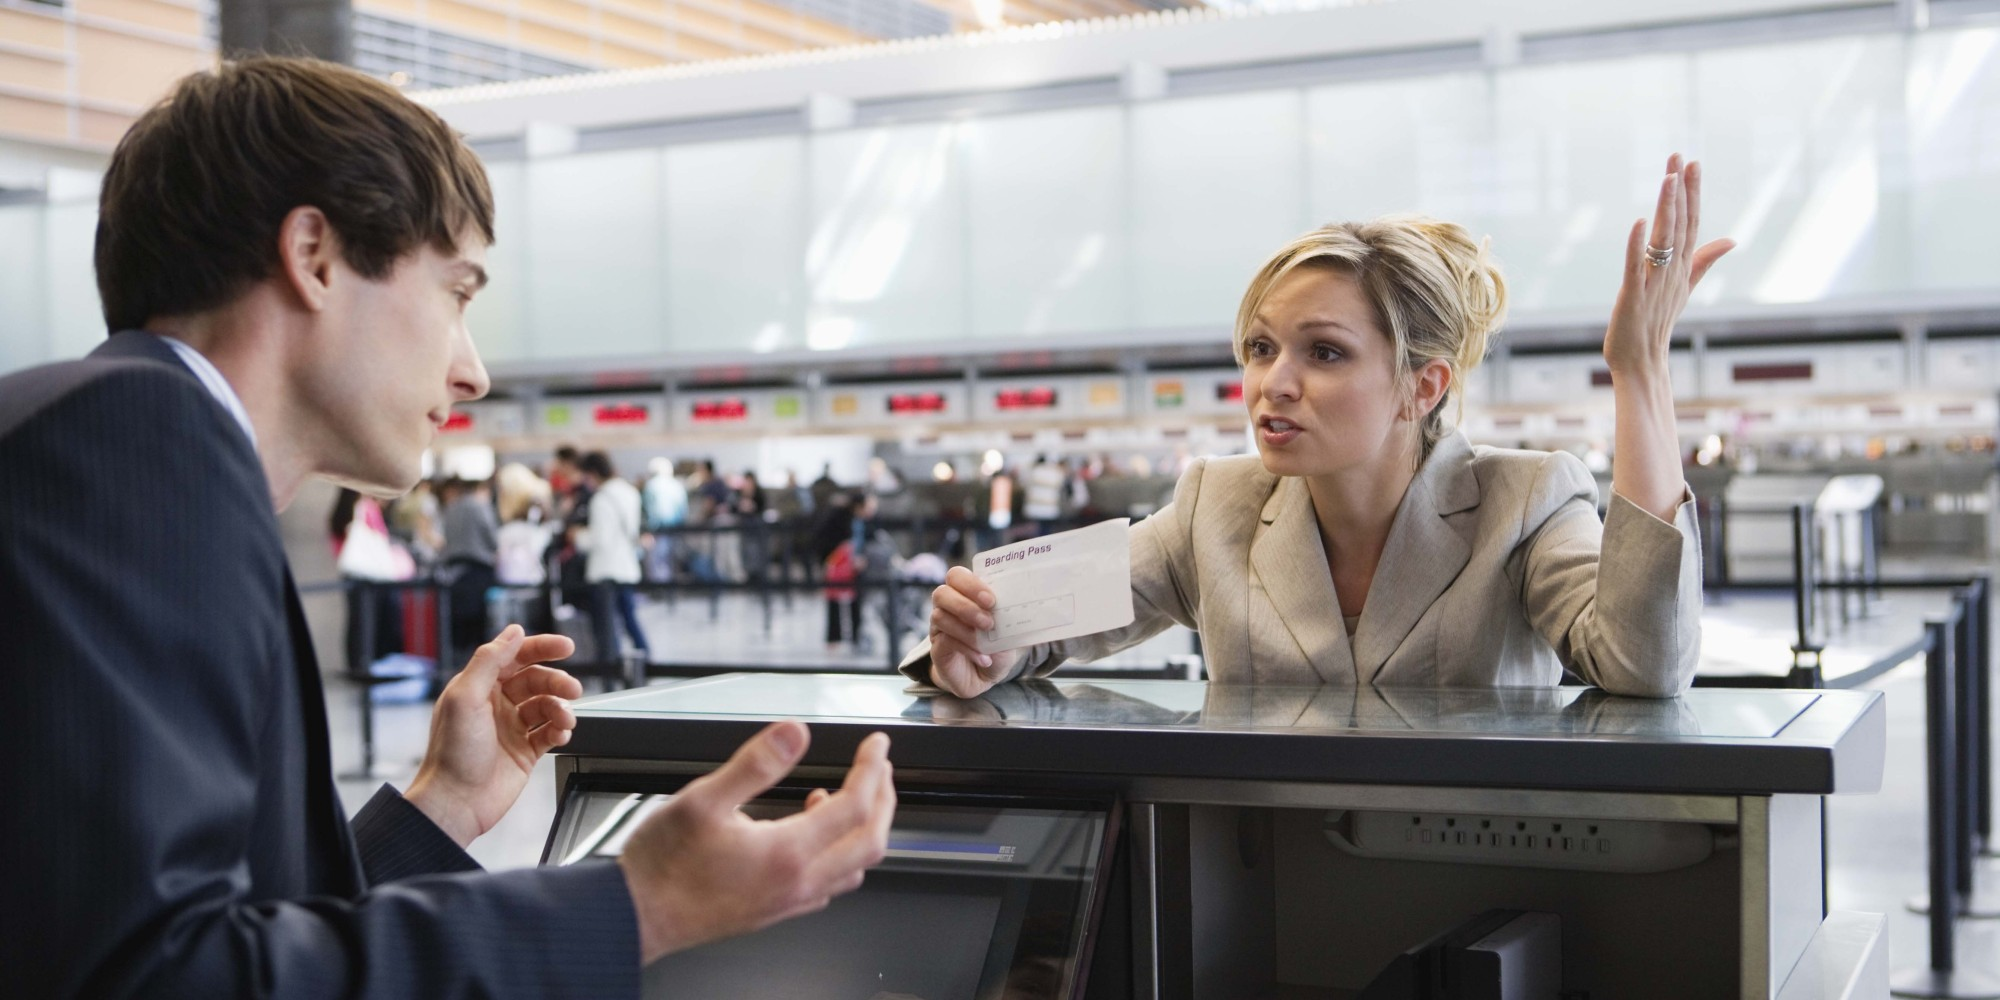 Your Guide to Avoiding Airport Stress